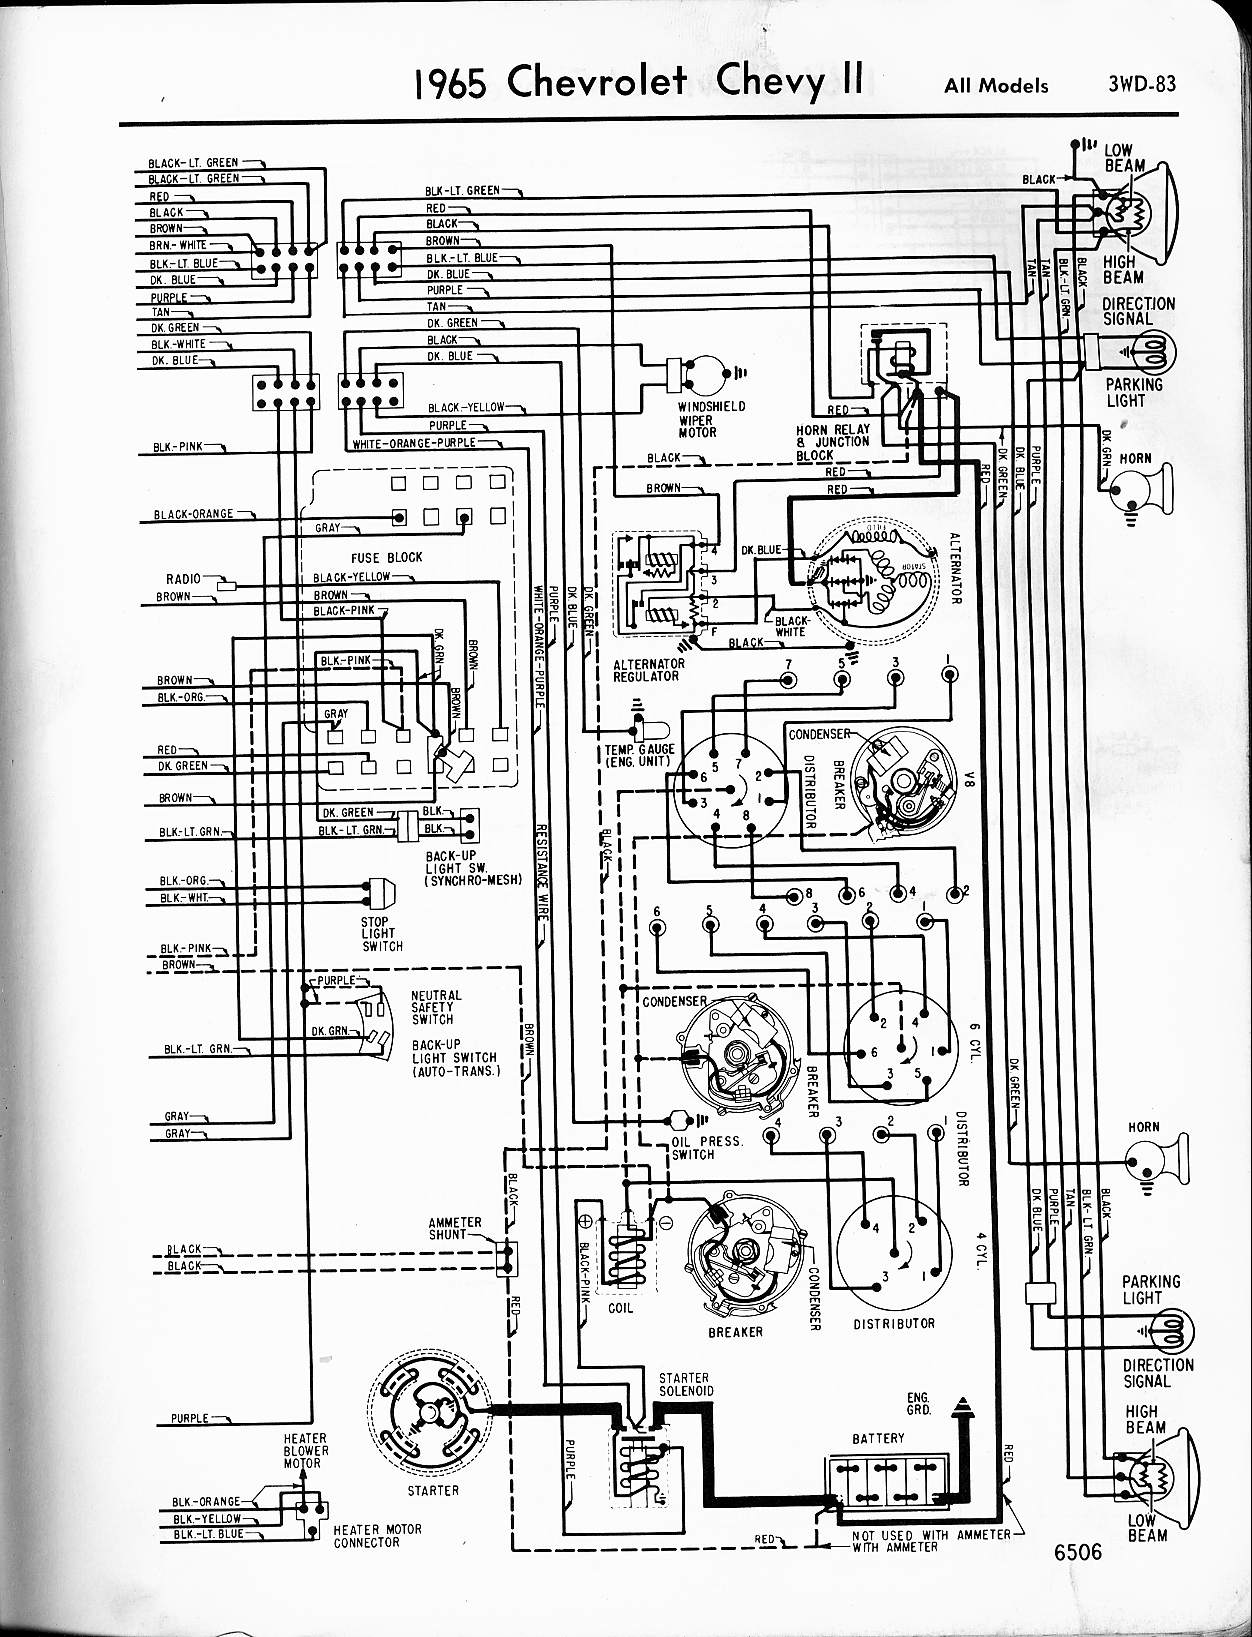 MWireChev65_3WD 083 1969 chevy nova wiring diagram 1969 chevelle engine wiring diagram  at soozxer.org